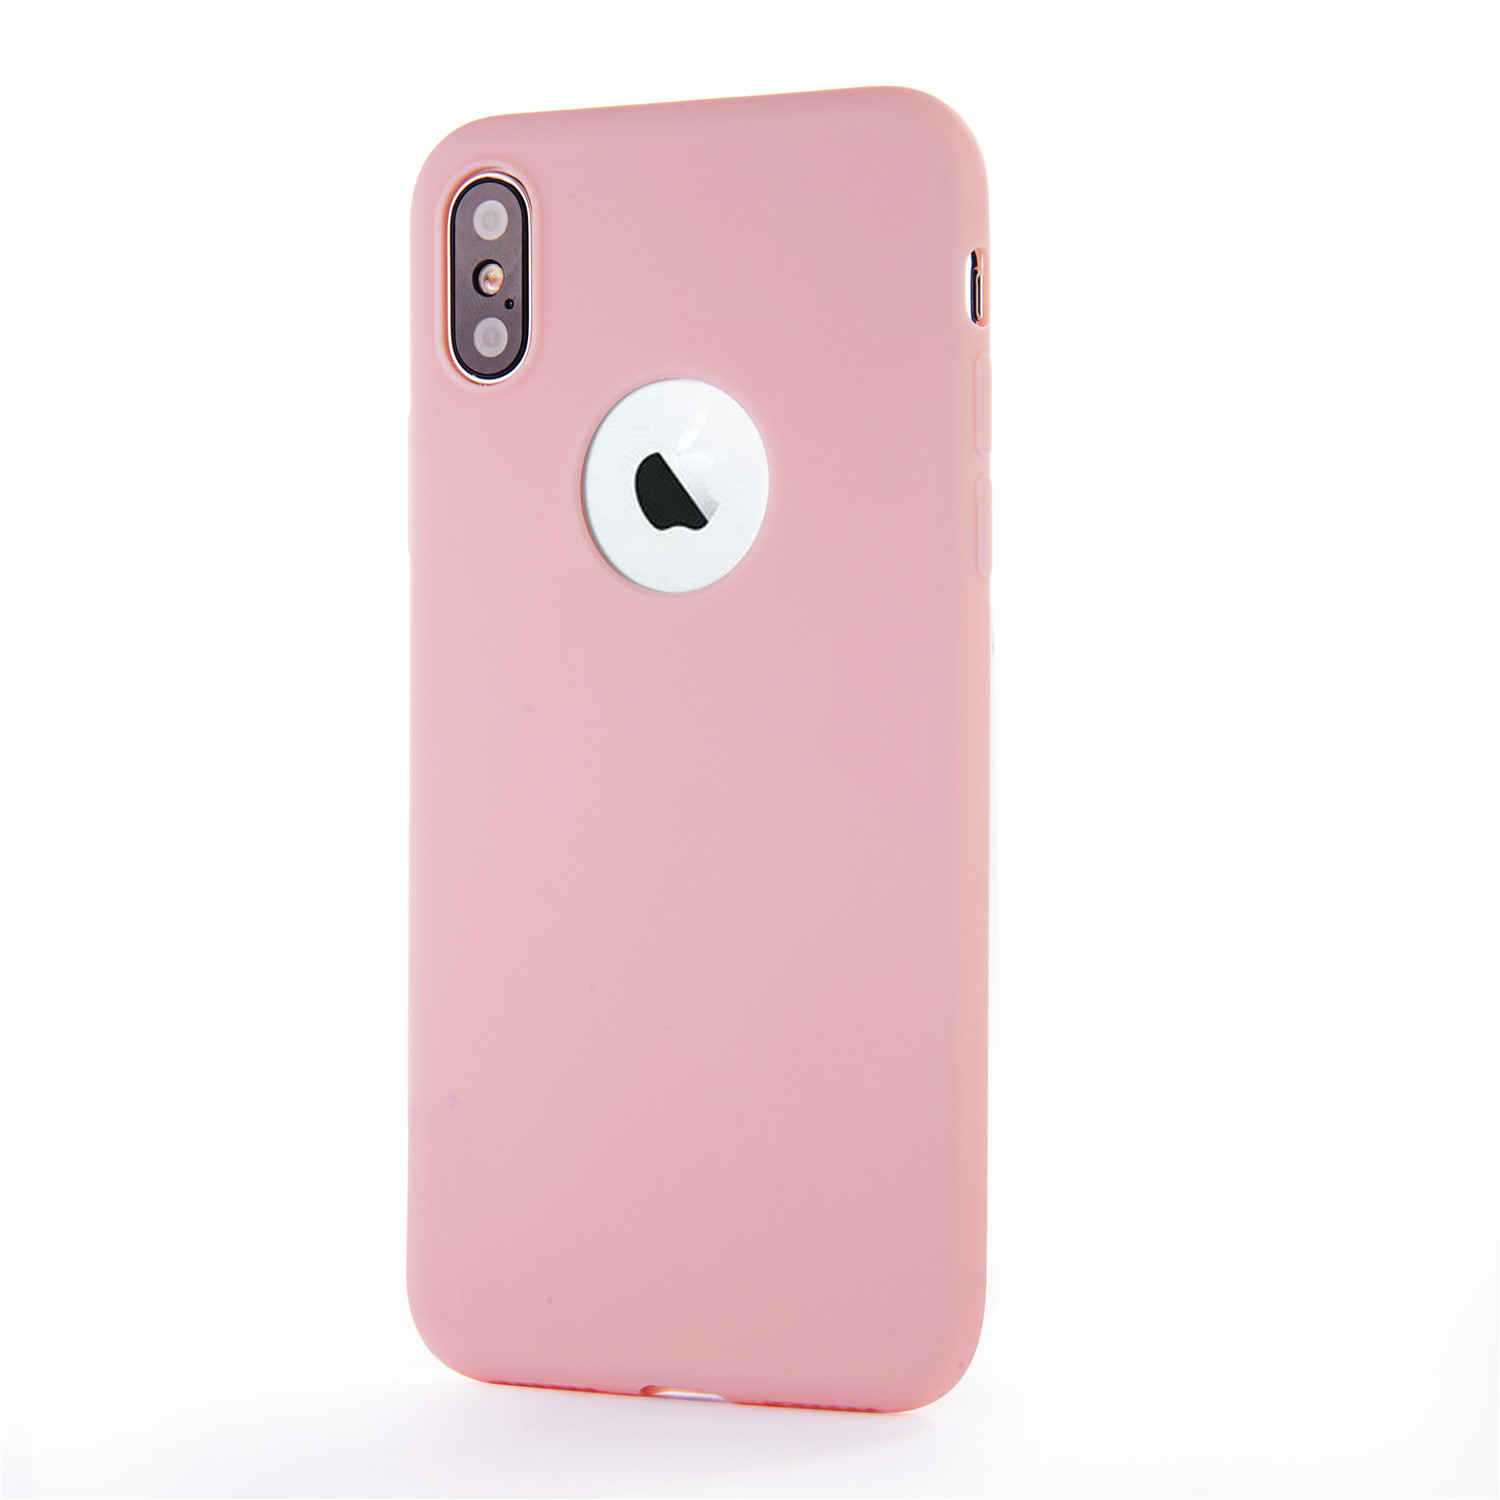 Cute Candy Colors Soft Silicone phone Case for iPhone 6 6S 7 8 Plus ...